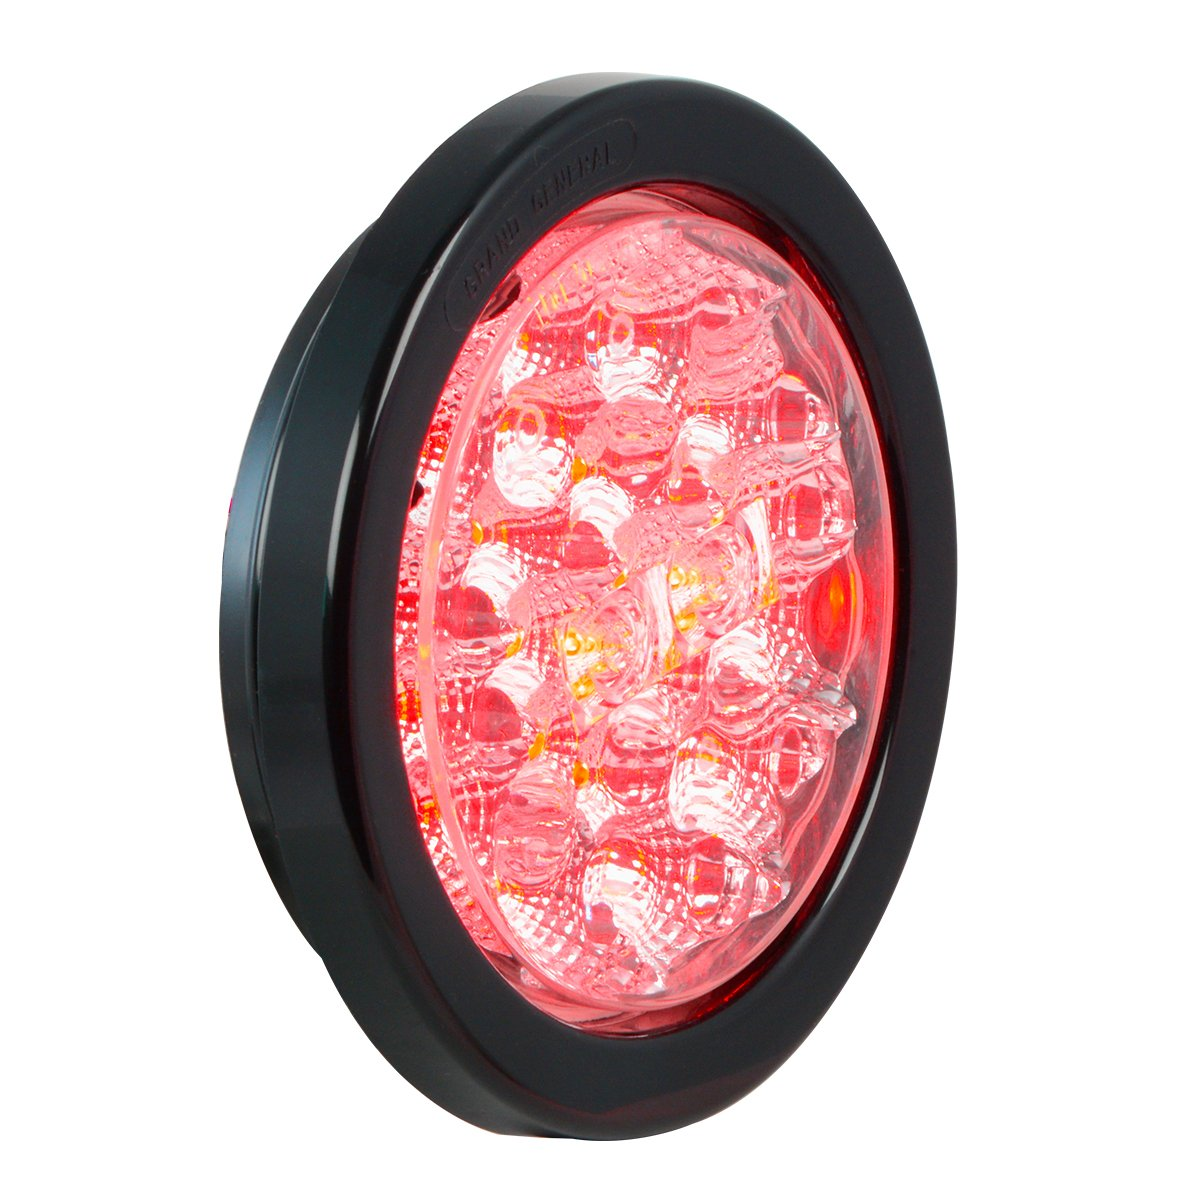 Grommet and Pigtail for Trucks Trailers GG Grand General Grand General 77084BP Spyder 4 Round Red LED Stop//Turn//Tail Includes Light RVs Utility Vehicles